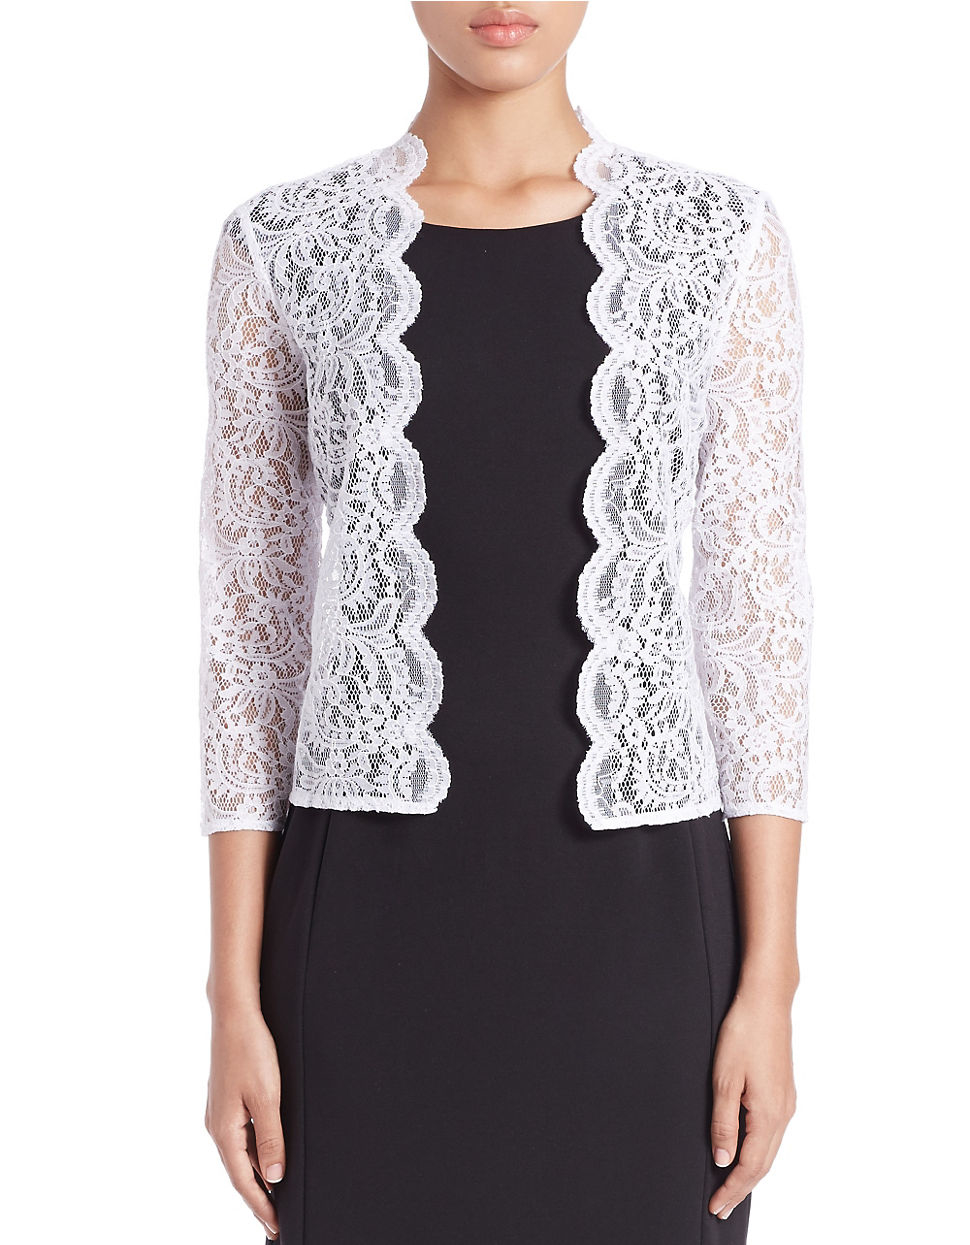 calvin klein lace cardigan in white lyst. Black Bedroom Furniture Sets. Home Design Ideas